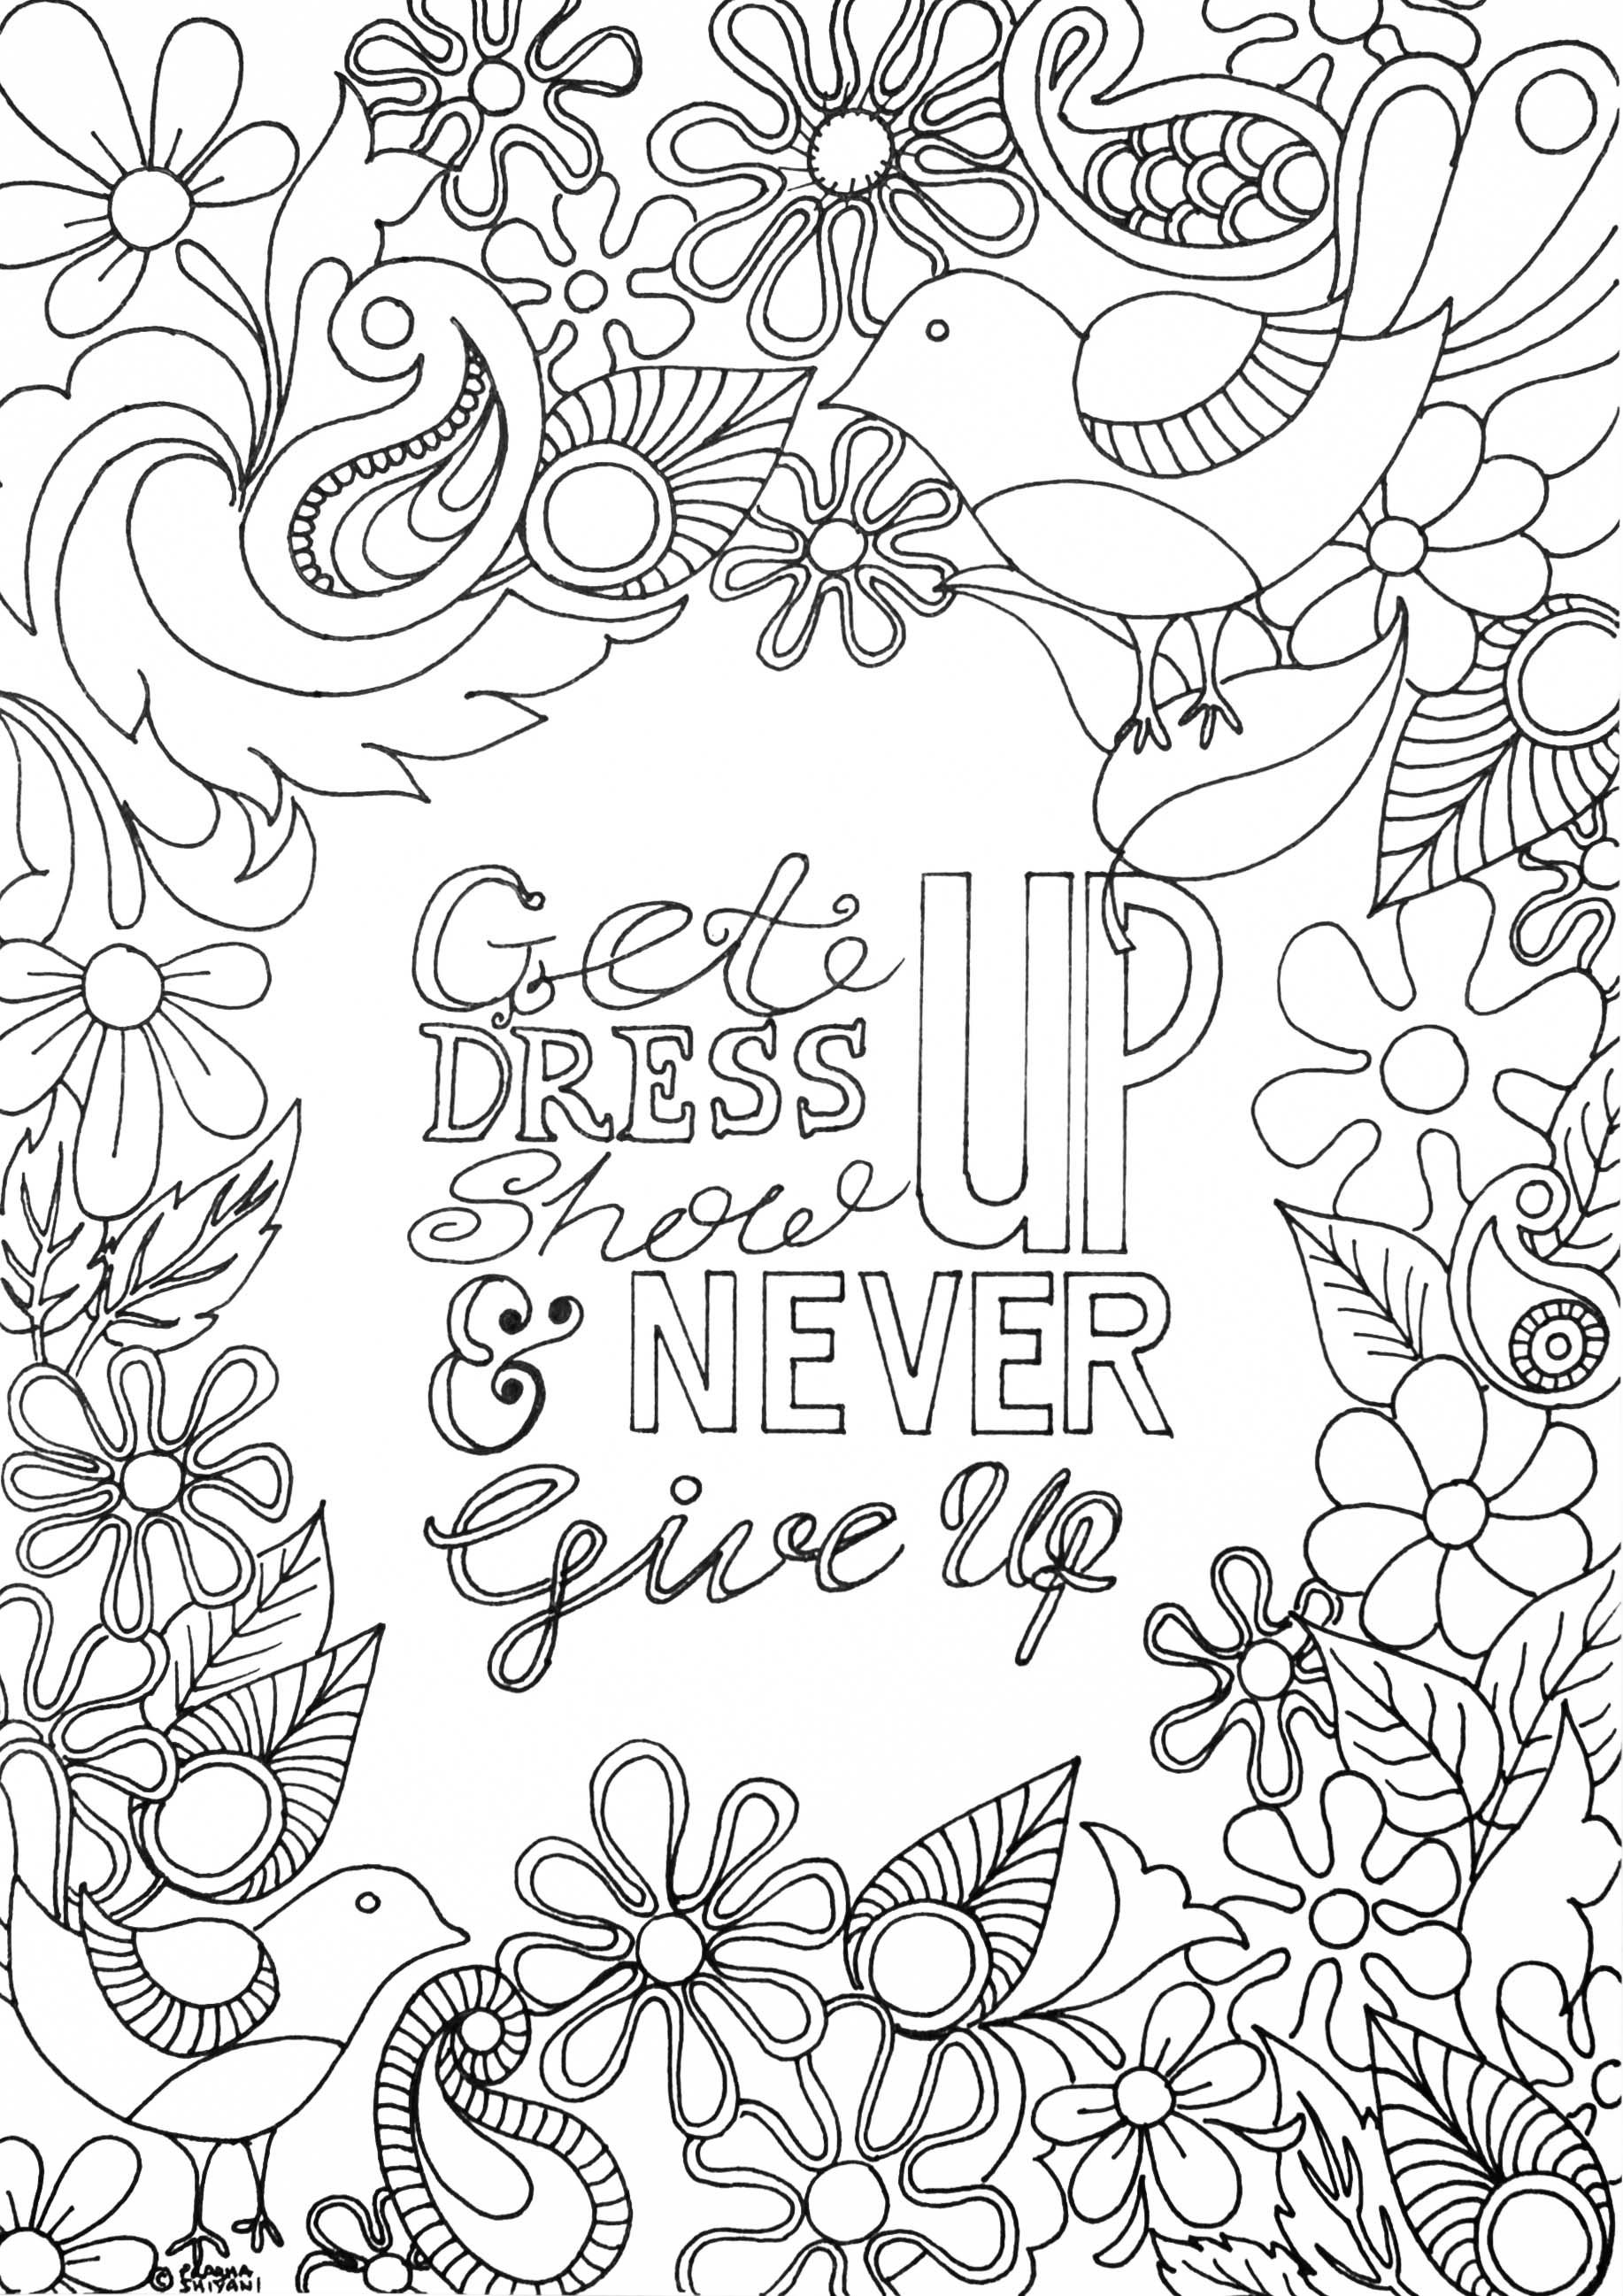 20151011 Flourishwell 124244 D700 Nd70352 Jpg 1 834 2 594 Pixels Love Coloring Pages Coloring Books Quote Coloring Pages